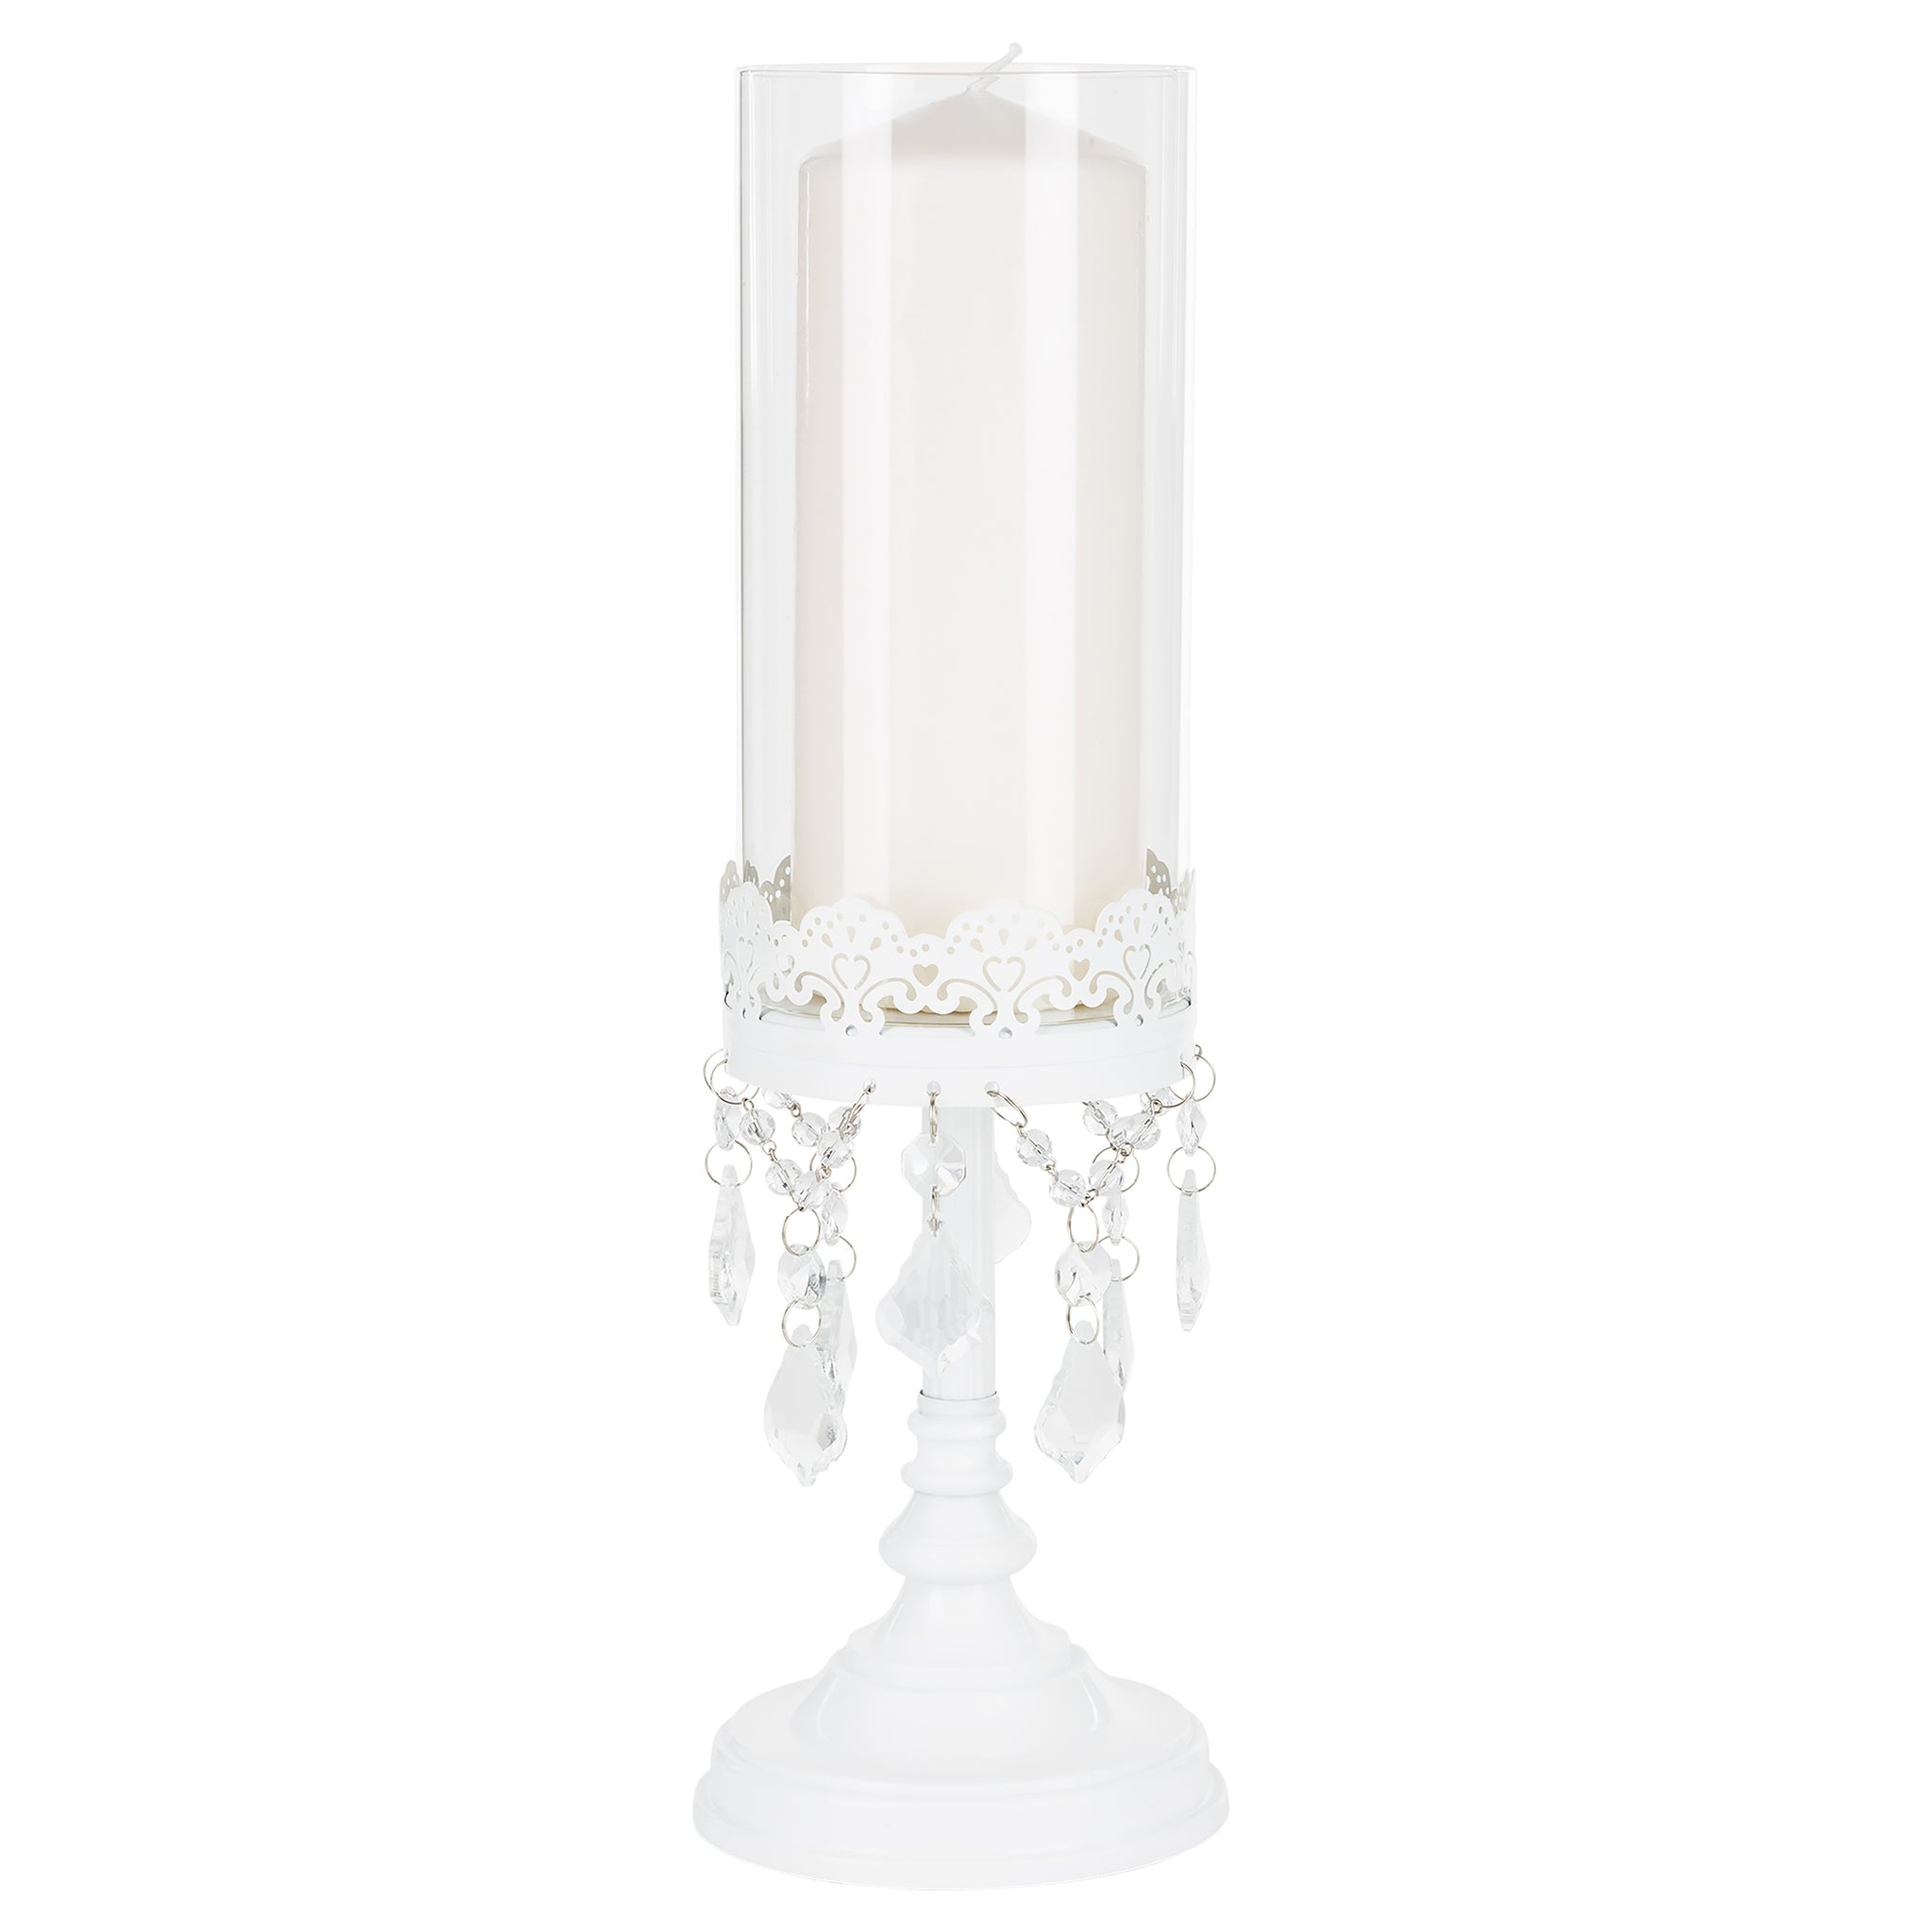 Amalfi Decor 15 Inch Tall Crystal-Draped Glass Hurricane Candle Holder (White) | Stainless Steel Frame with Glass Crystals